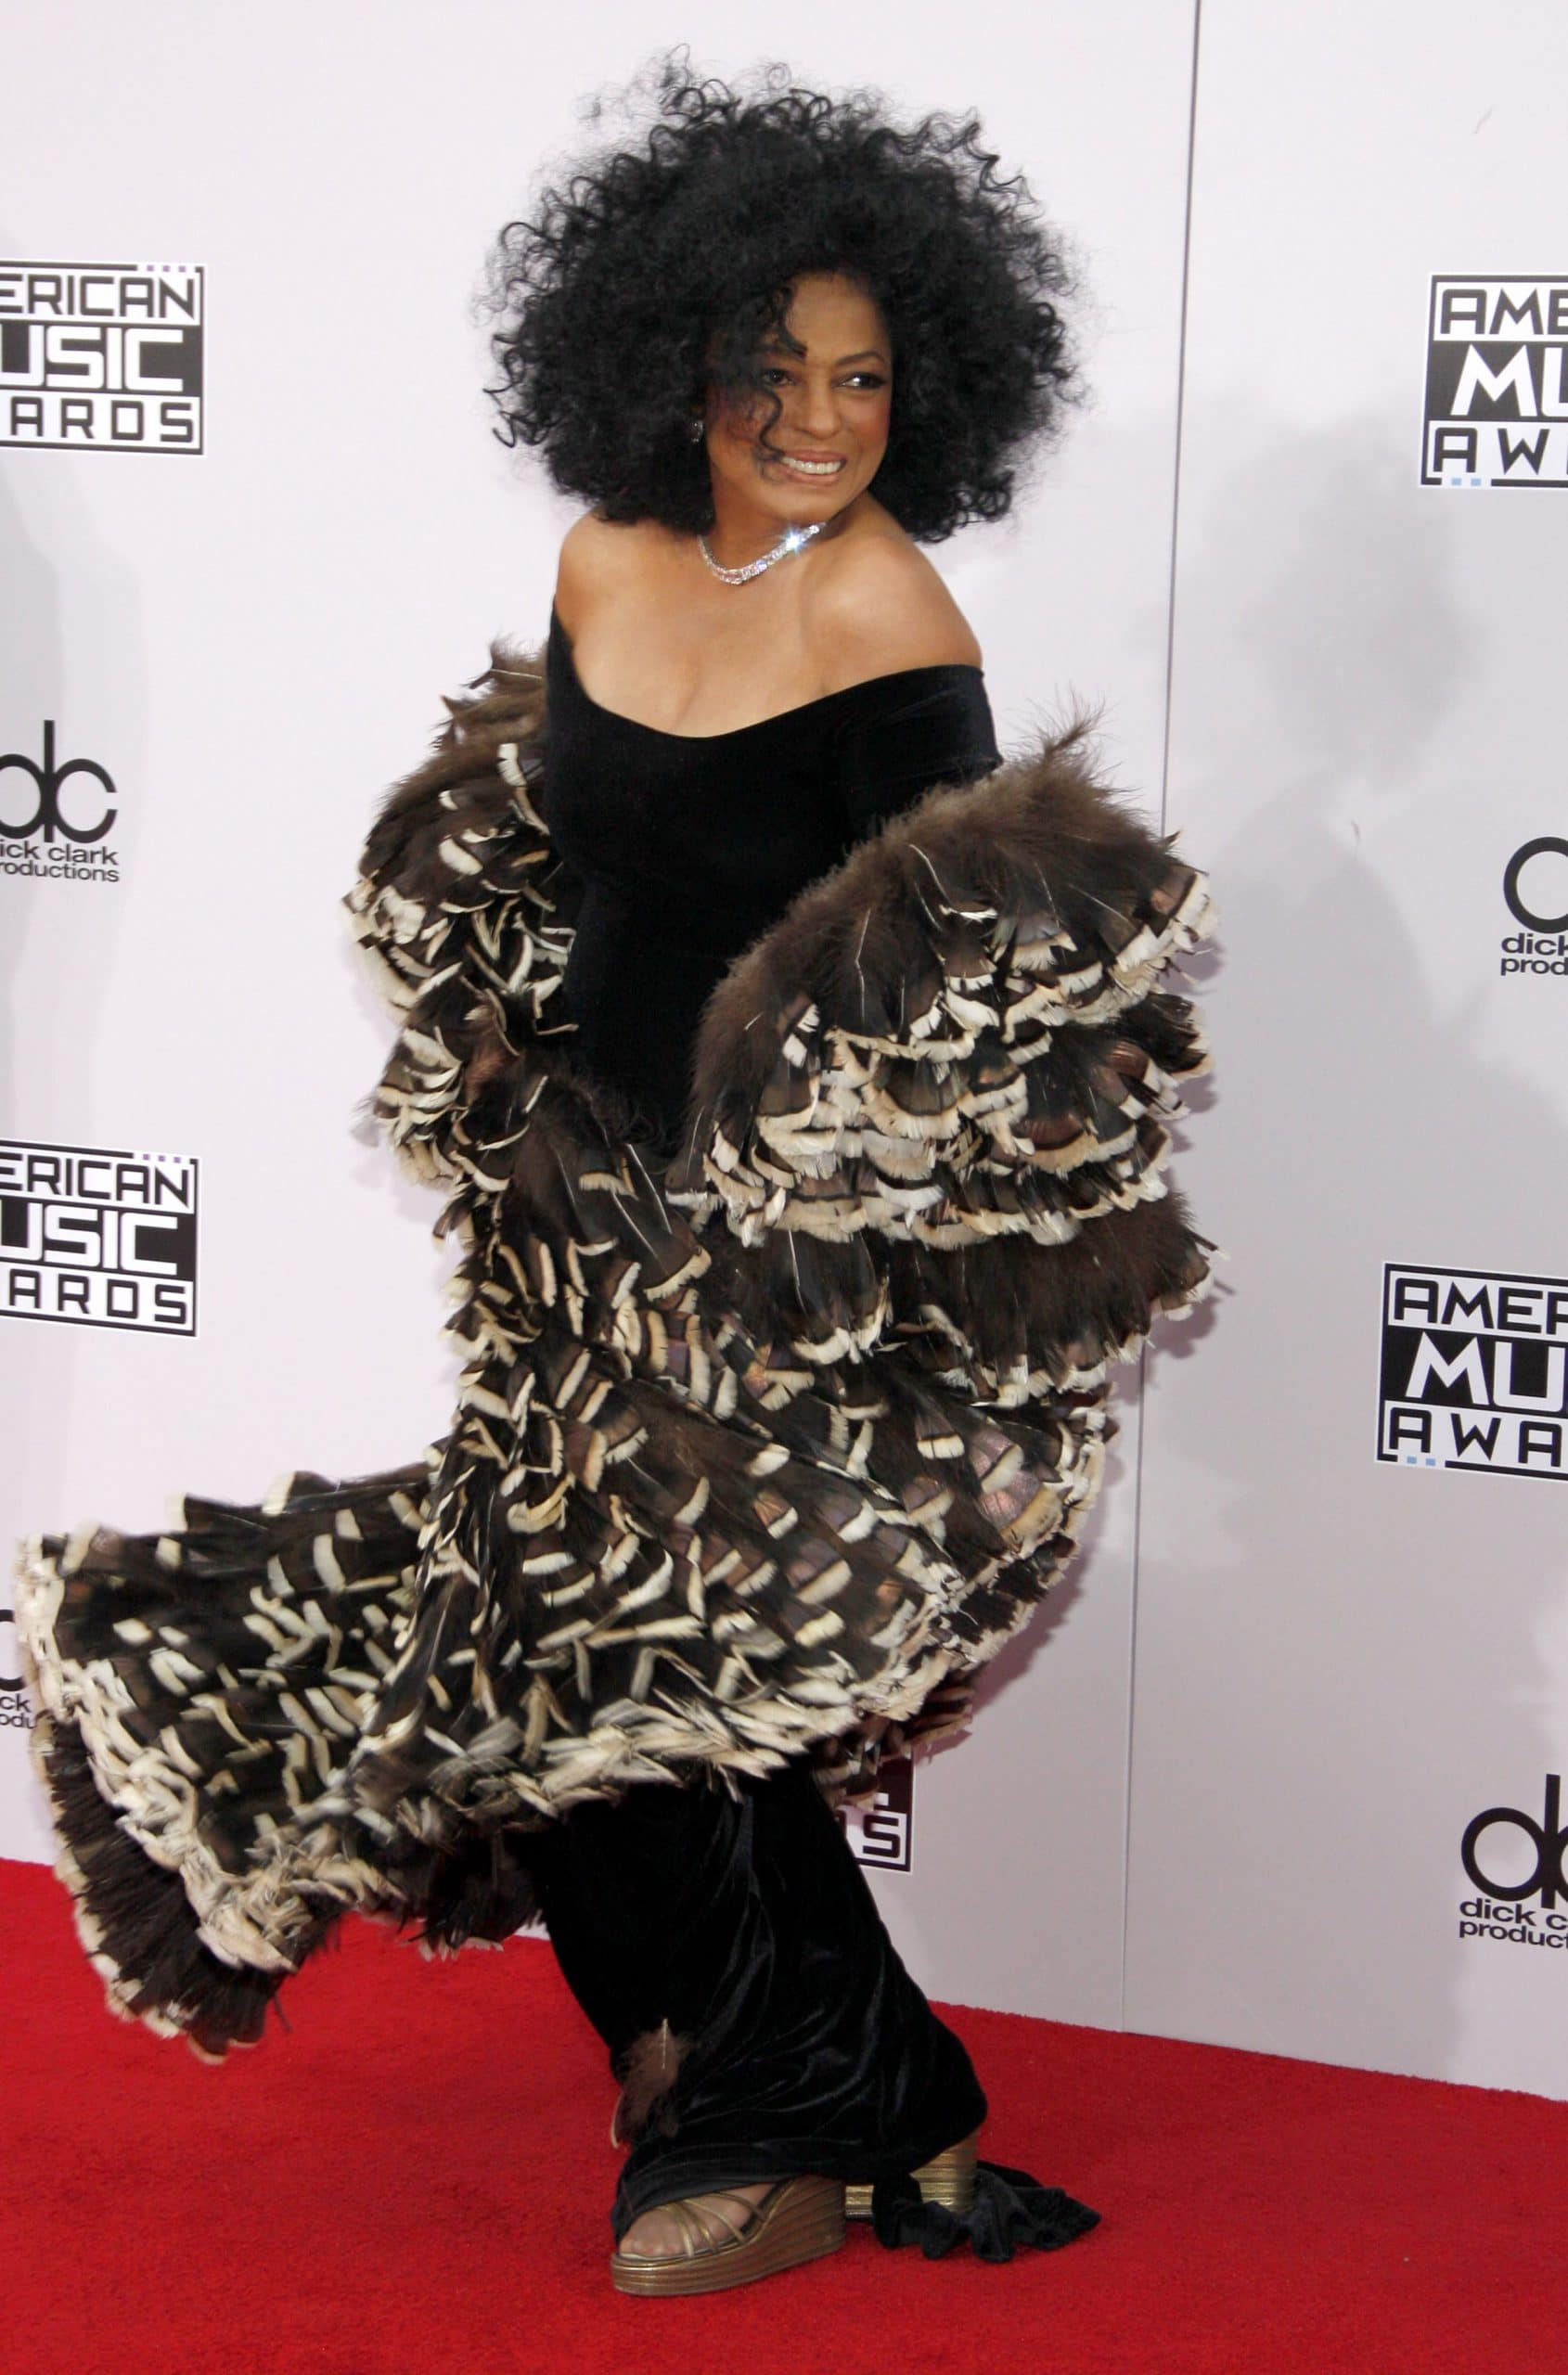 Diana ross im coming out gay